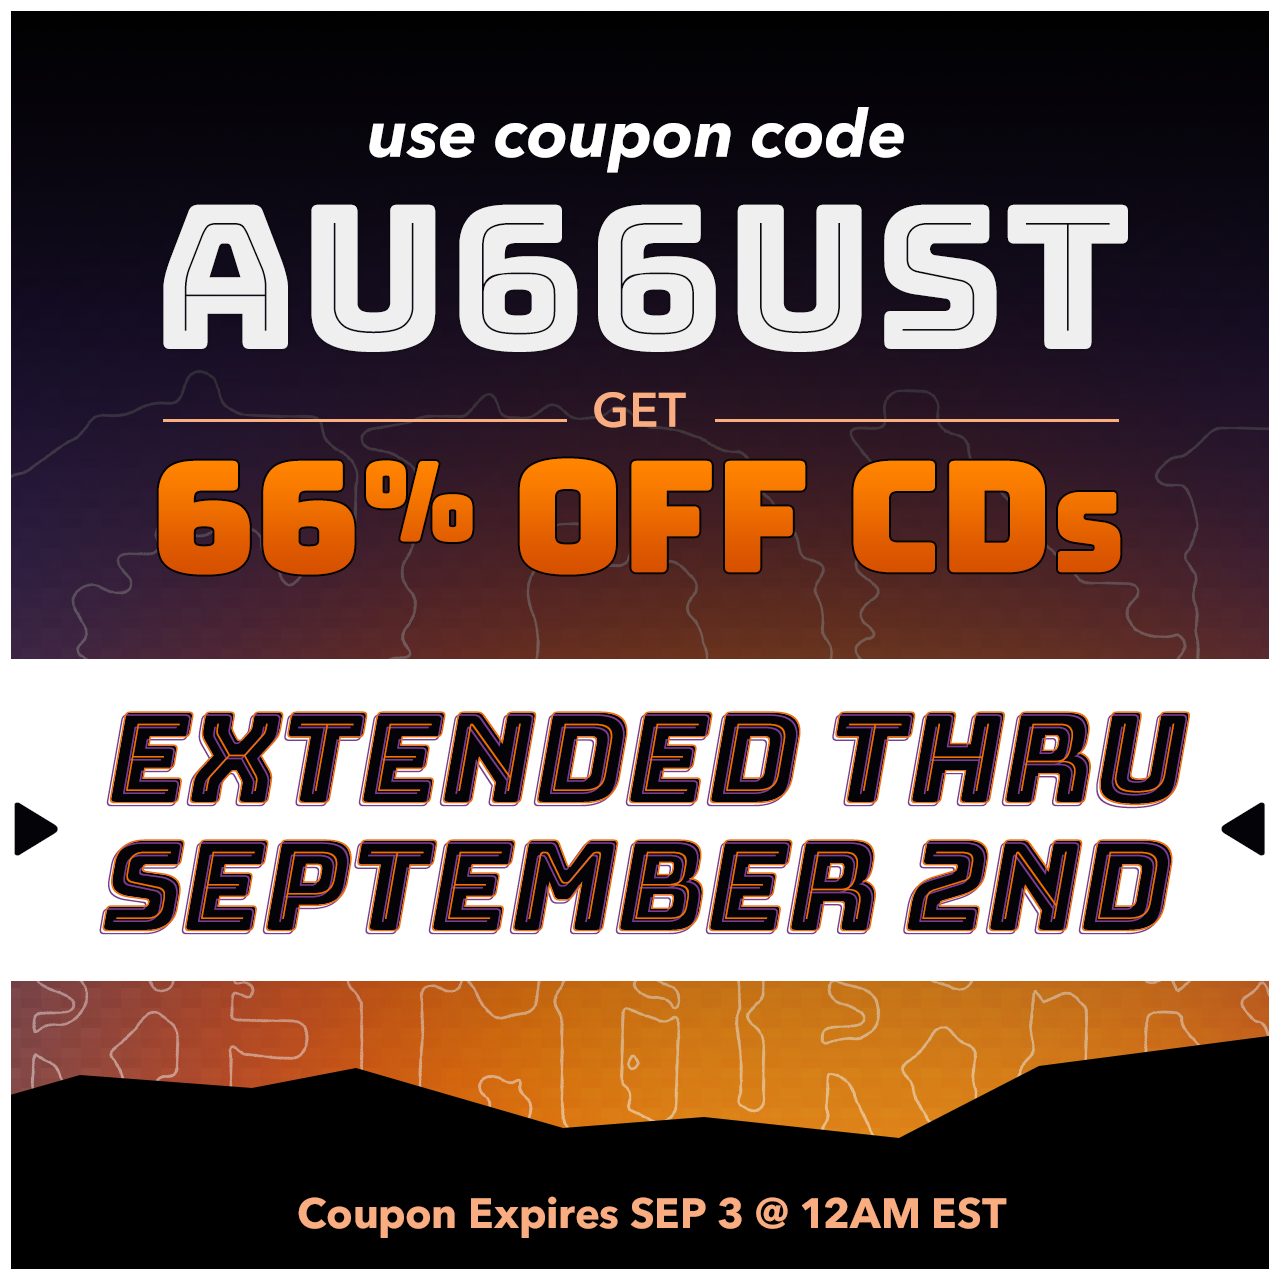 Extended offer promo graphic